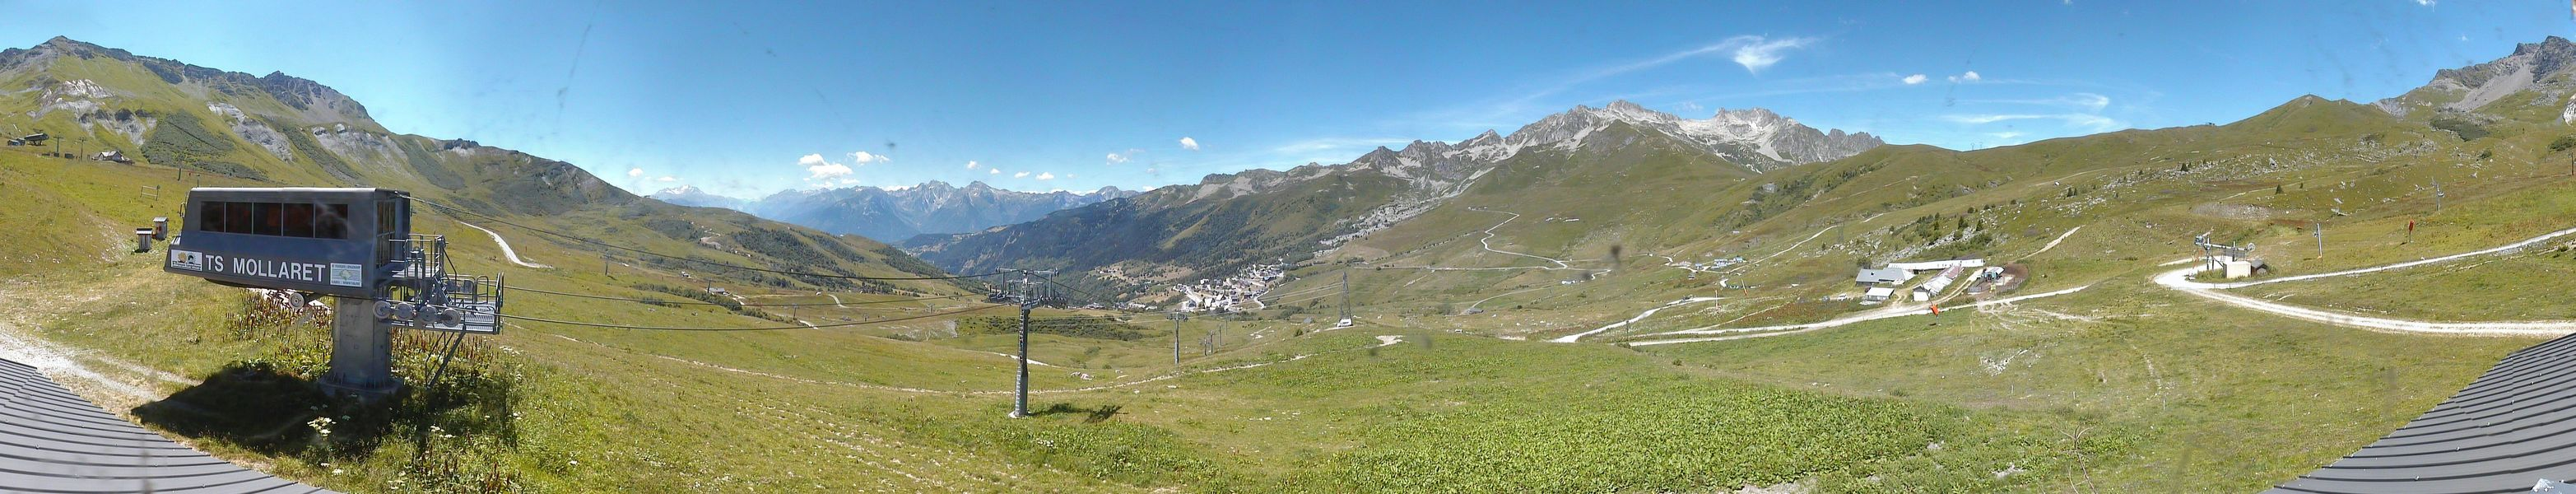 St Francois Longchamp - Webcam 1